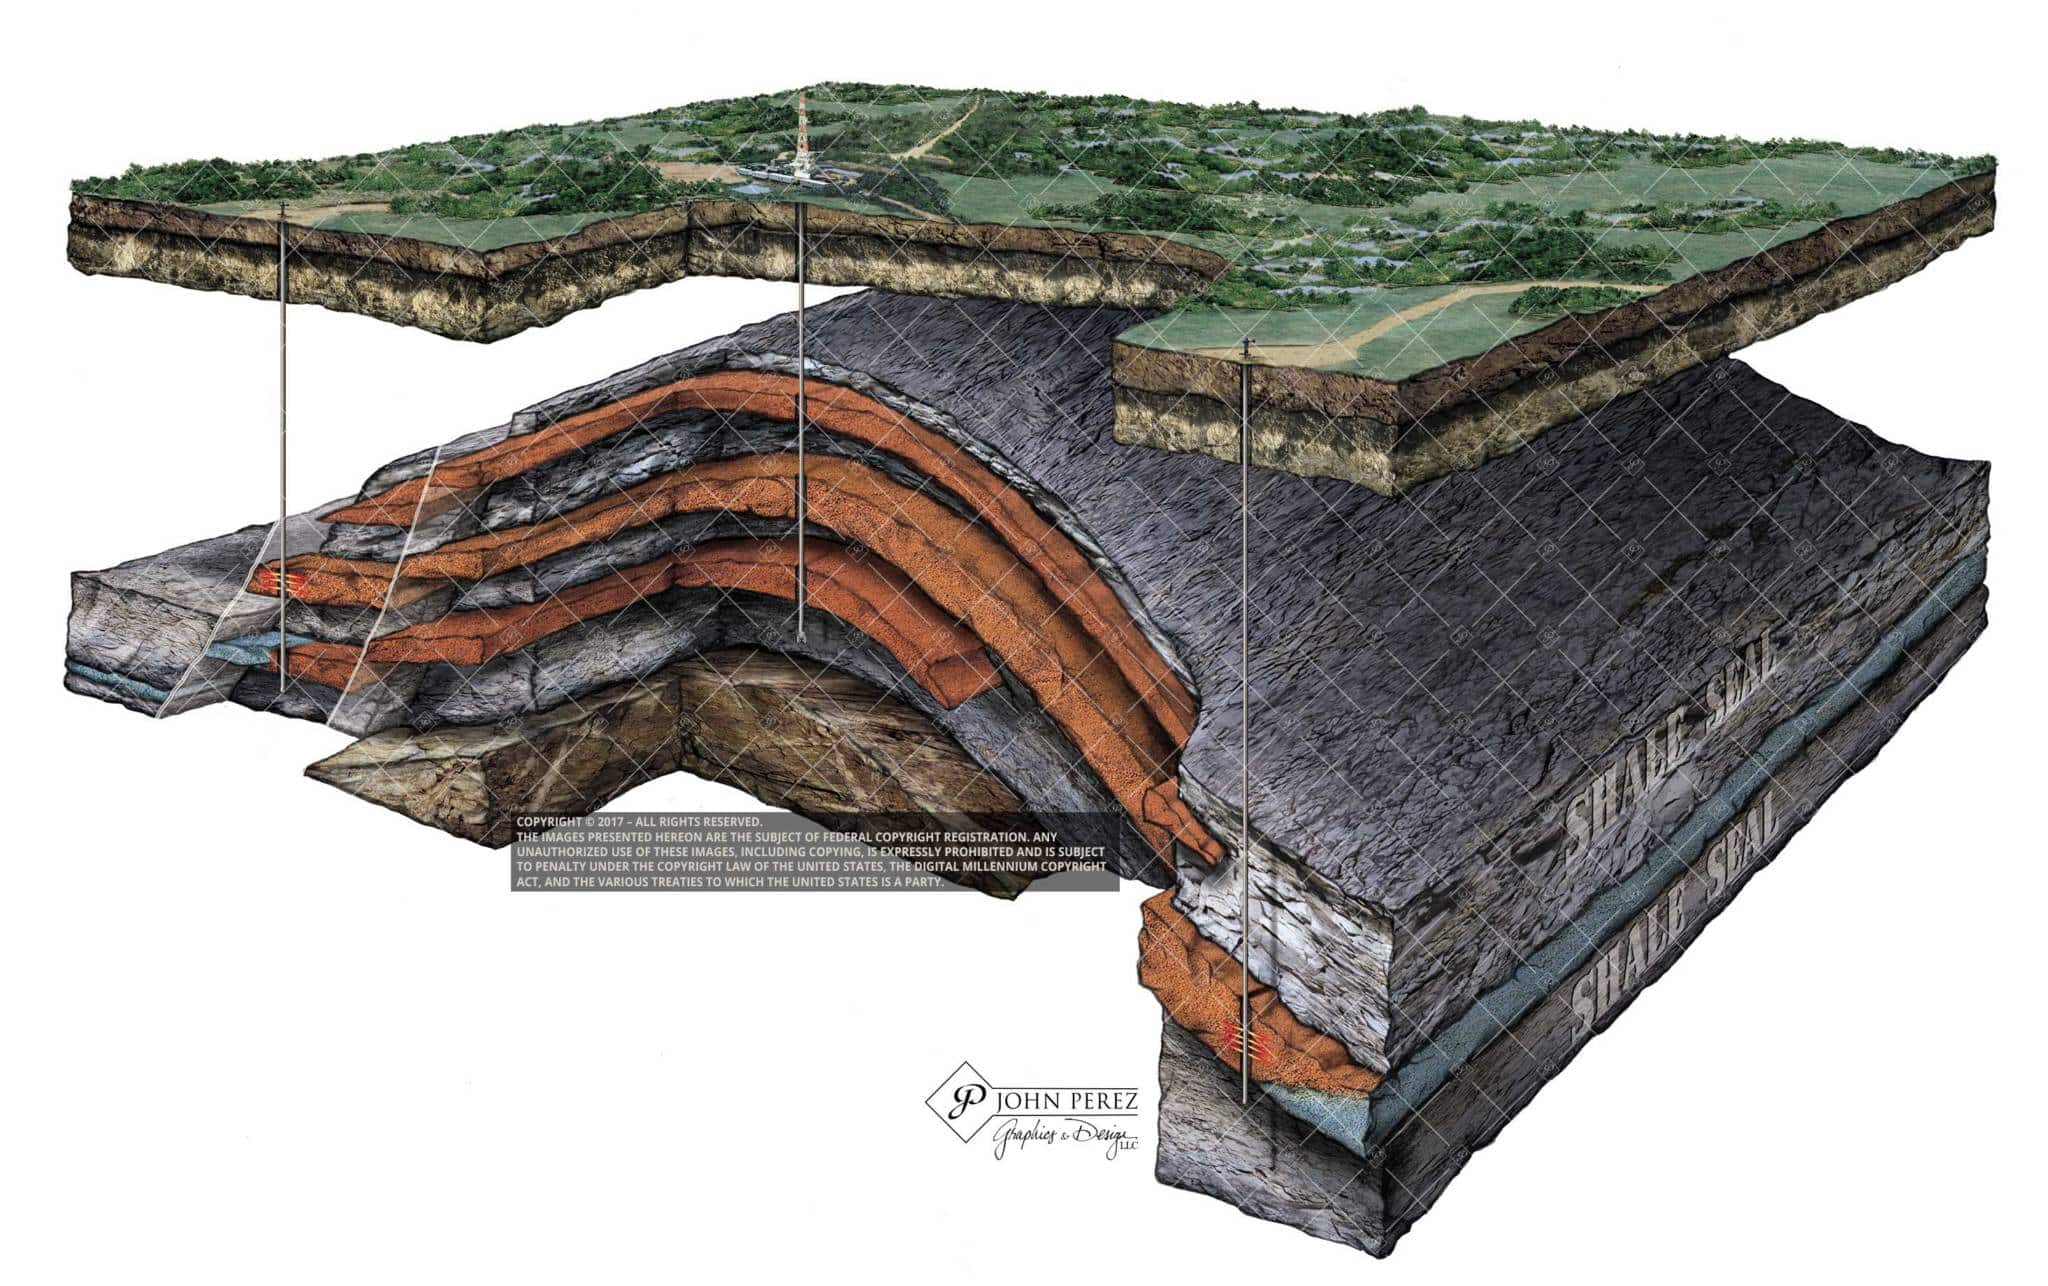 Anticlinal Stacked Formation, john perez graphics, anticline, oil gas schematic, oil gas illustration, M2